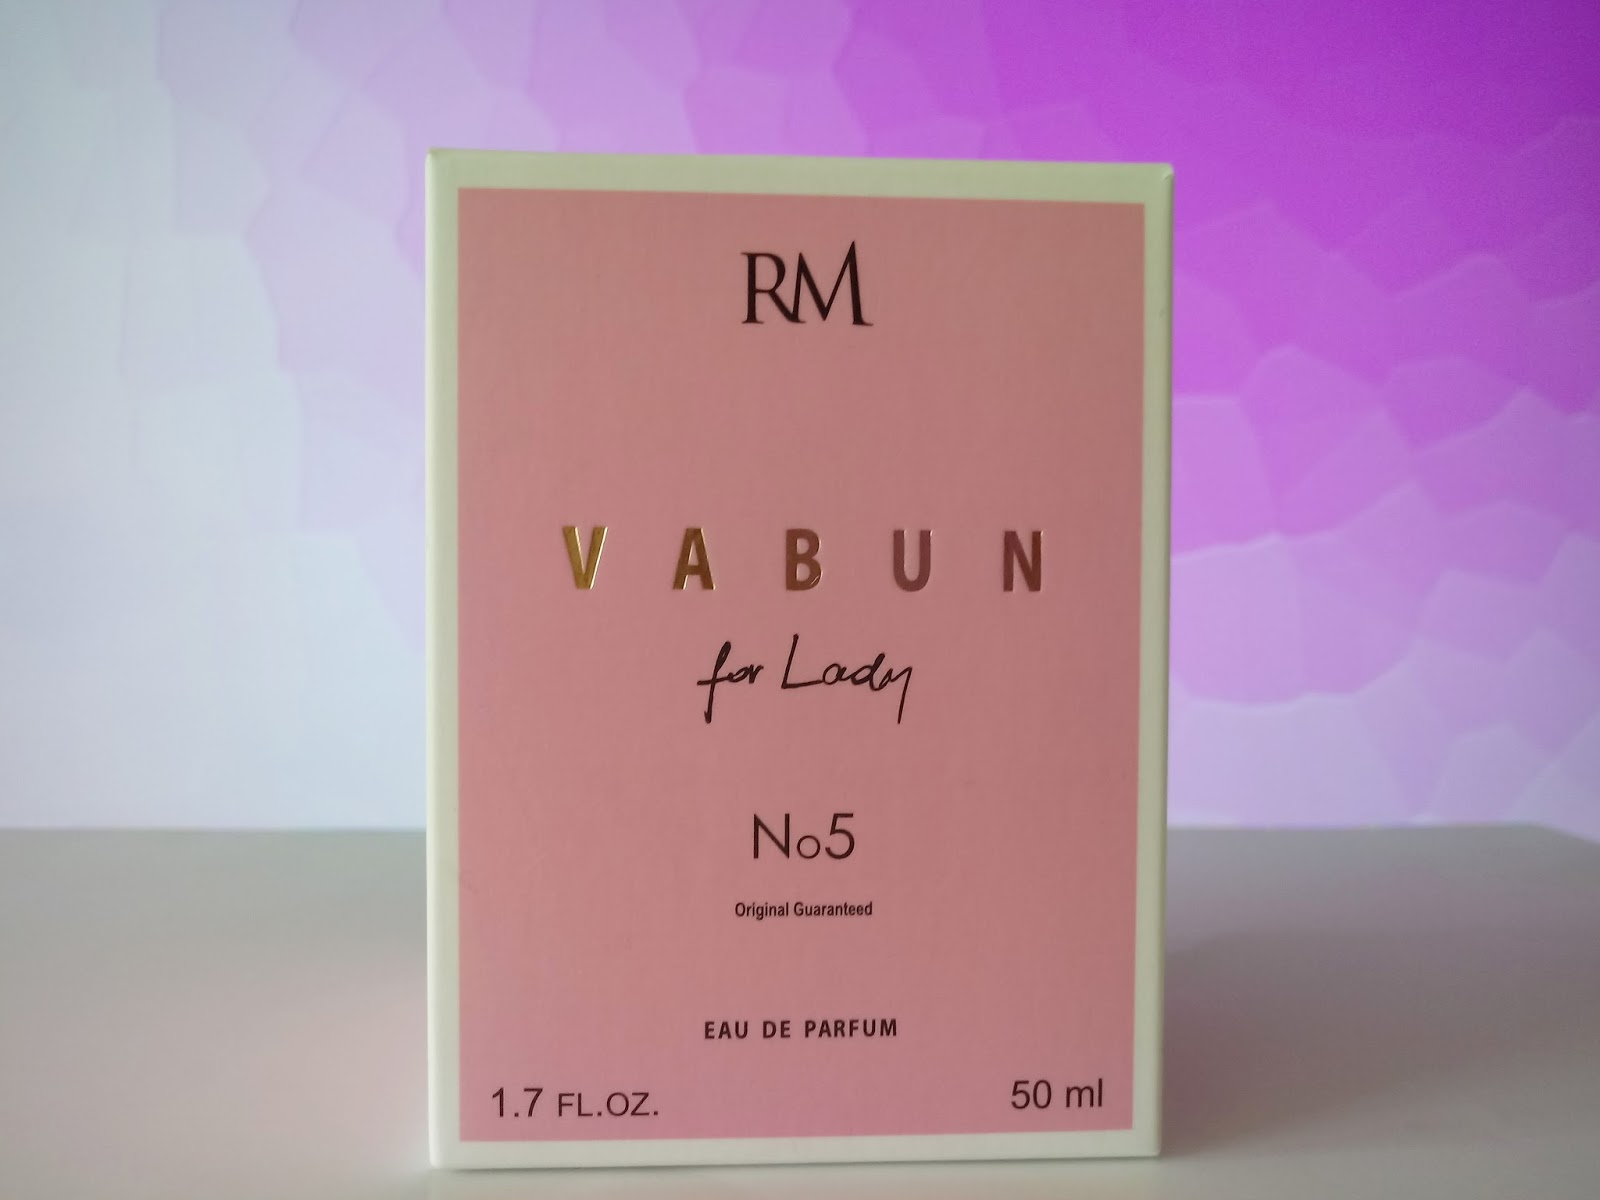 Vabun for Lady No 5